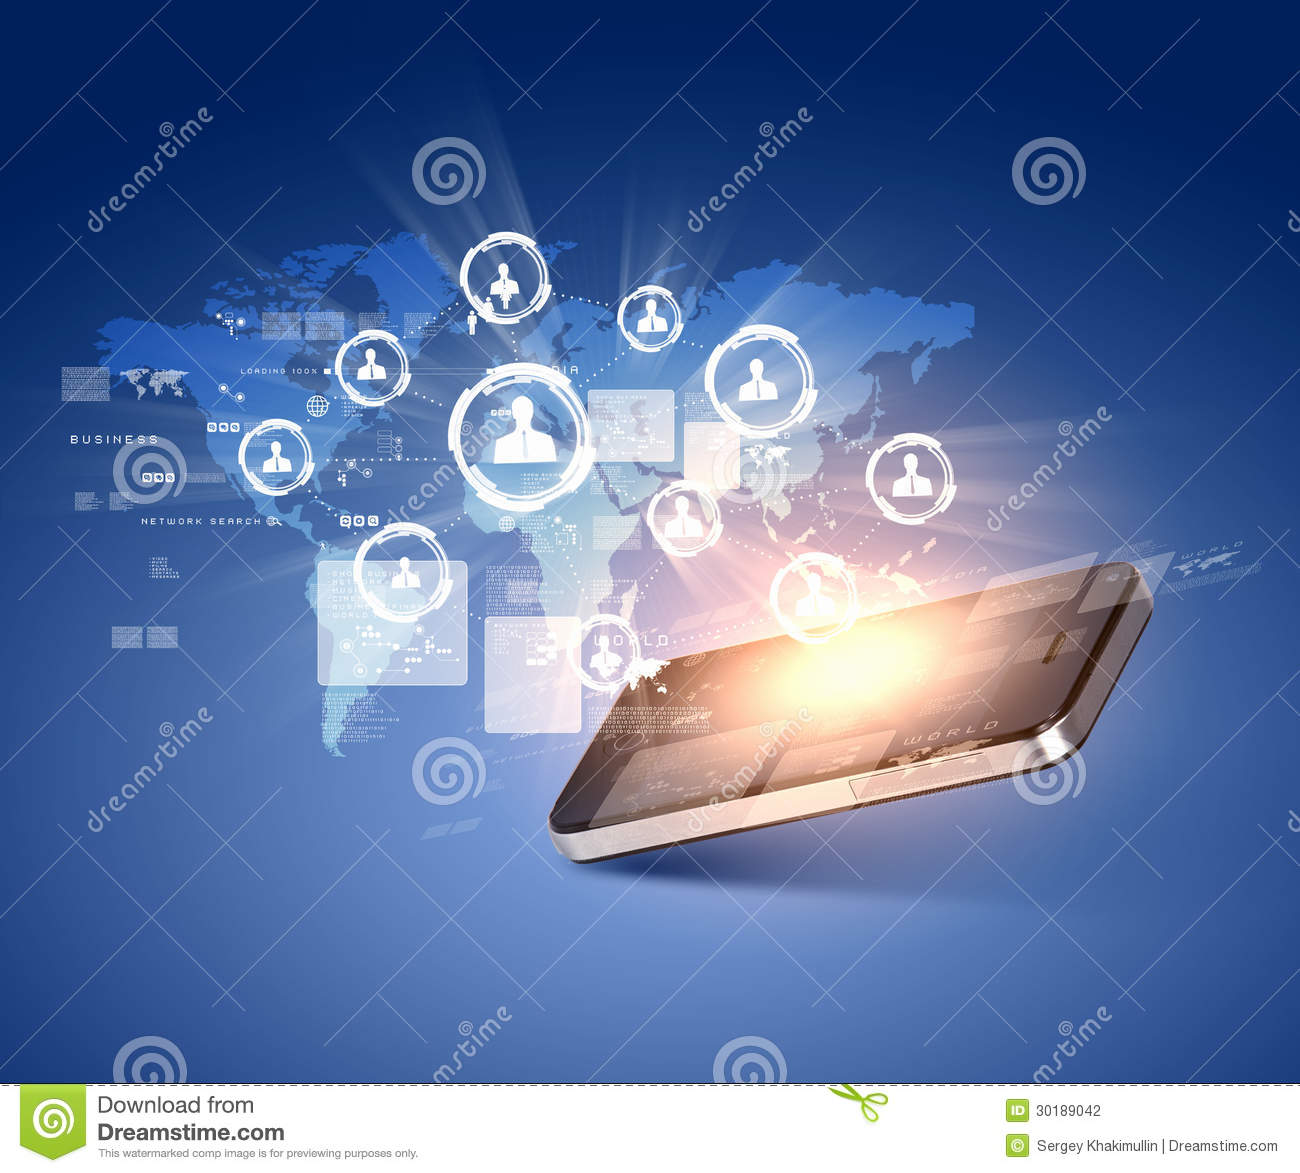 Modern Communication Technology Stock Photo - Image: 30189042